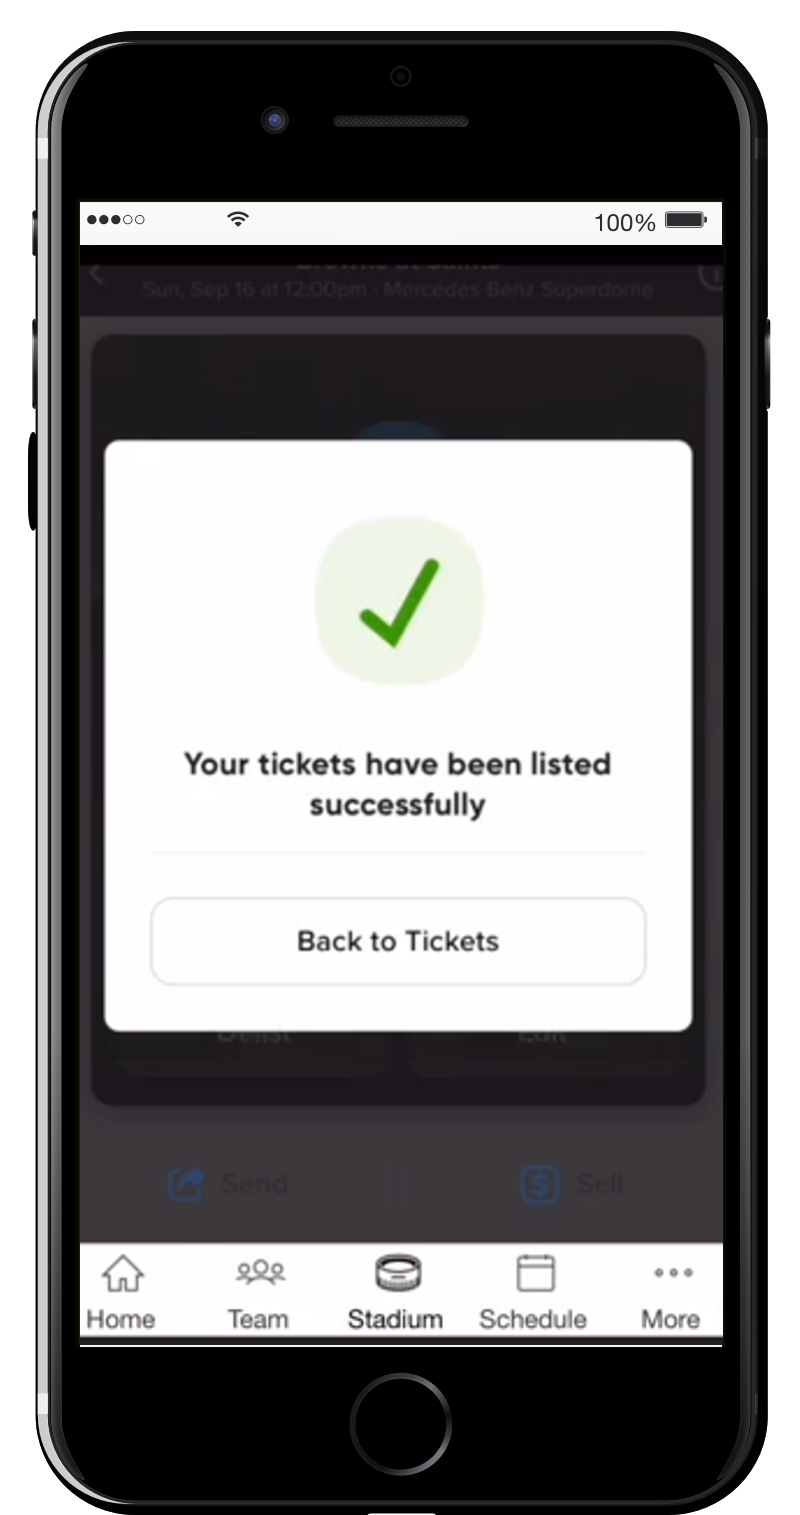 Your tickets have been successfully listed.